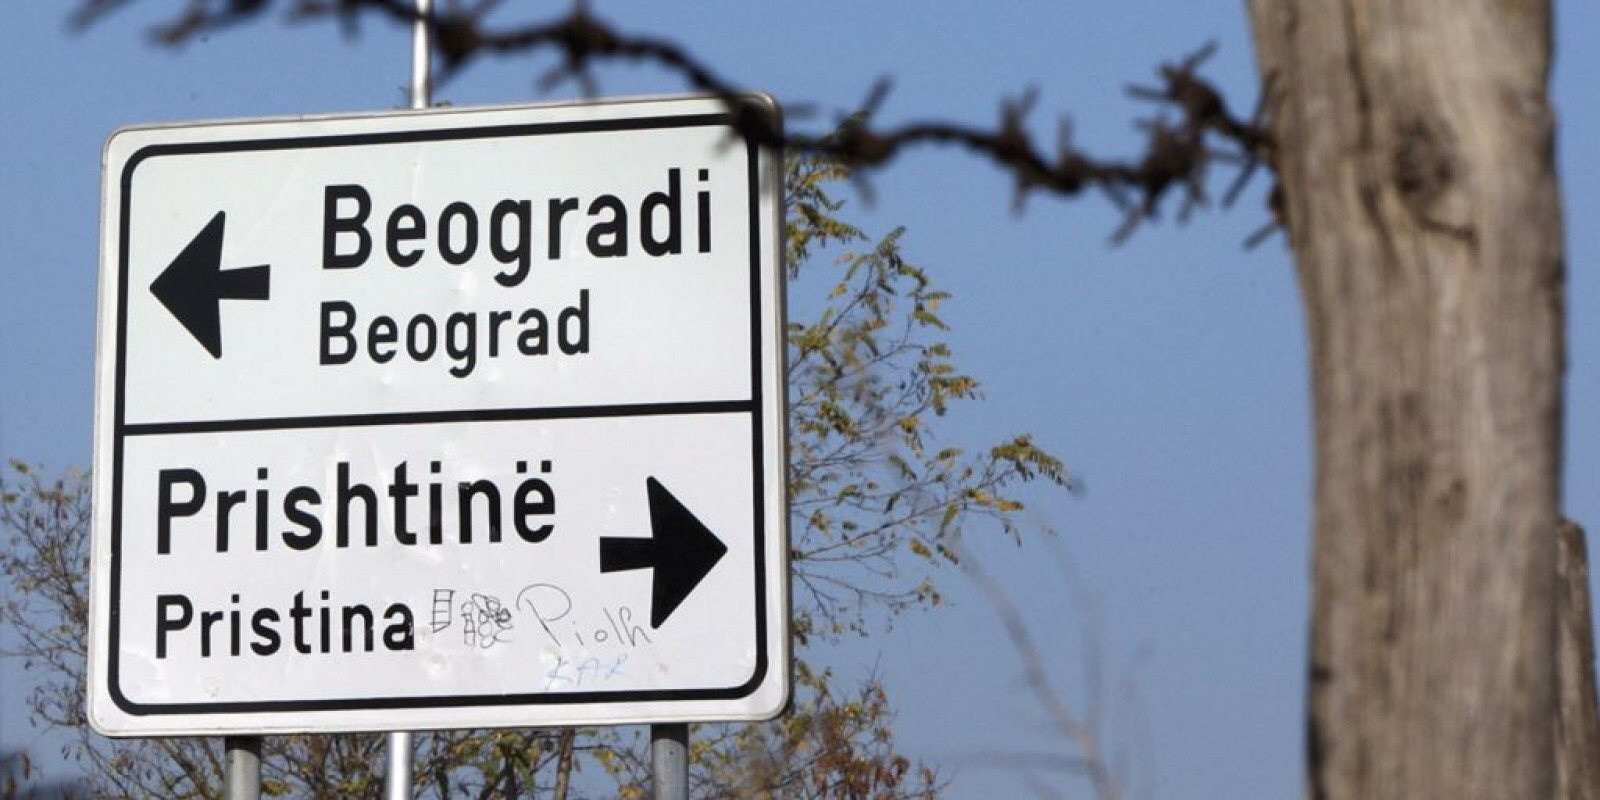 OP/ED: The agreement between Belgrade and Pristina will bring US funds to the region